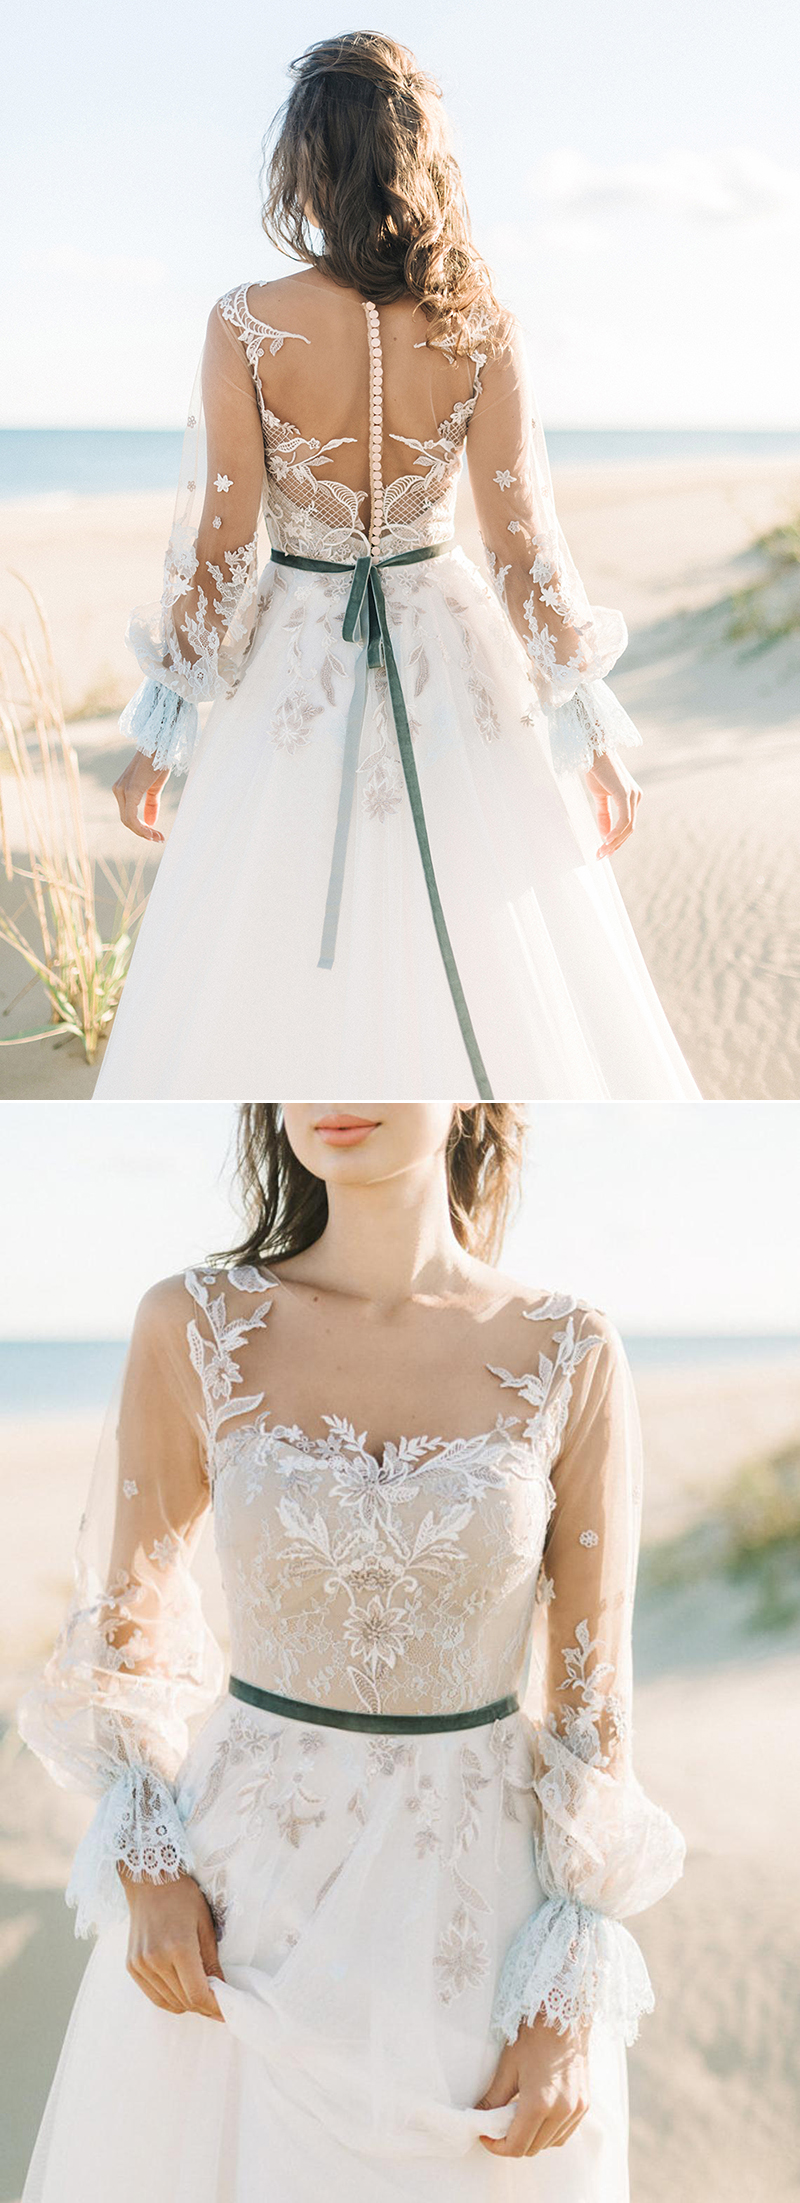 colored floral wedding dress